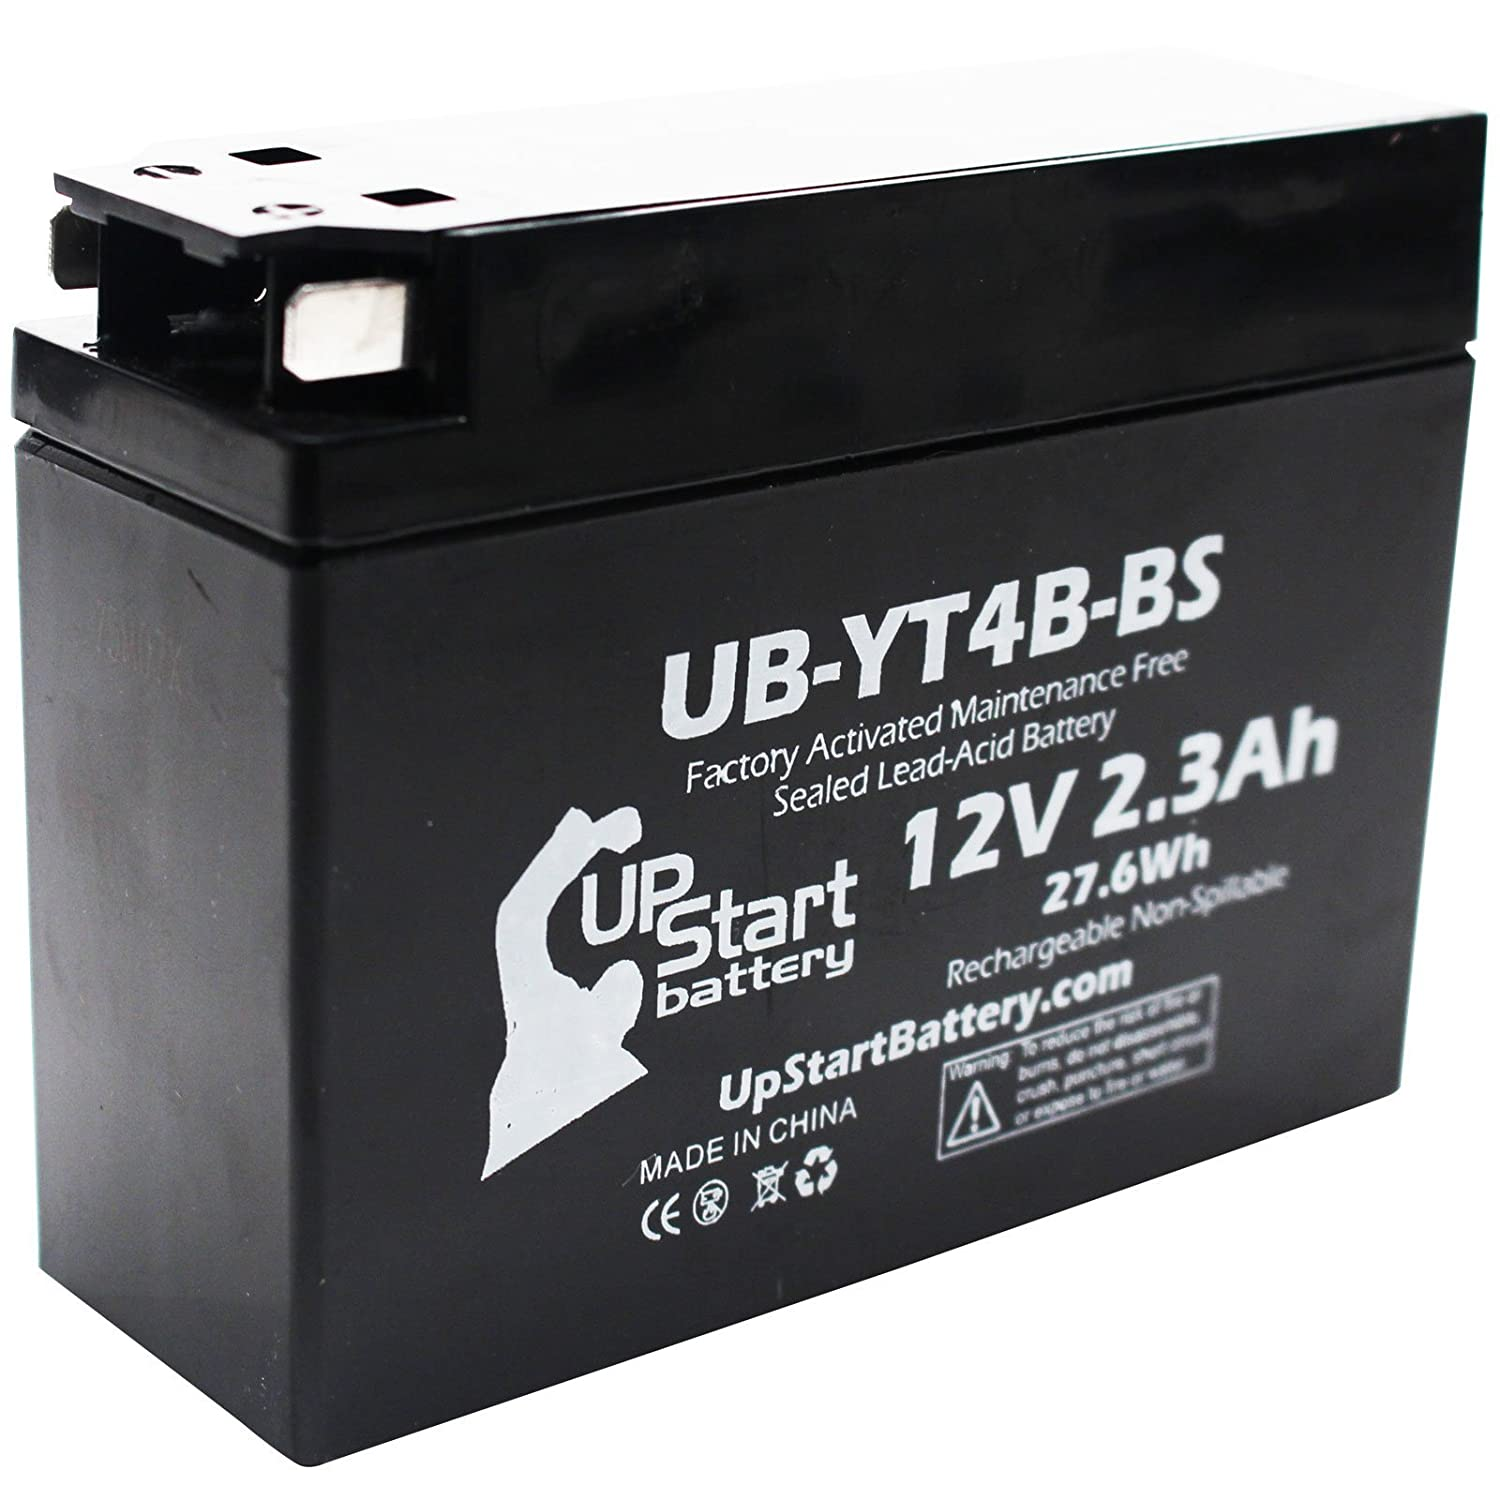 Replacement 2006 Yamaha TTR50E 50CC Factory Activated, Maintenance Free, Motorcycle Battery - 12V, 2.3Ah, UB-YT4B-BS Upstart Battery UB-YT4B-BS-DL3